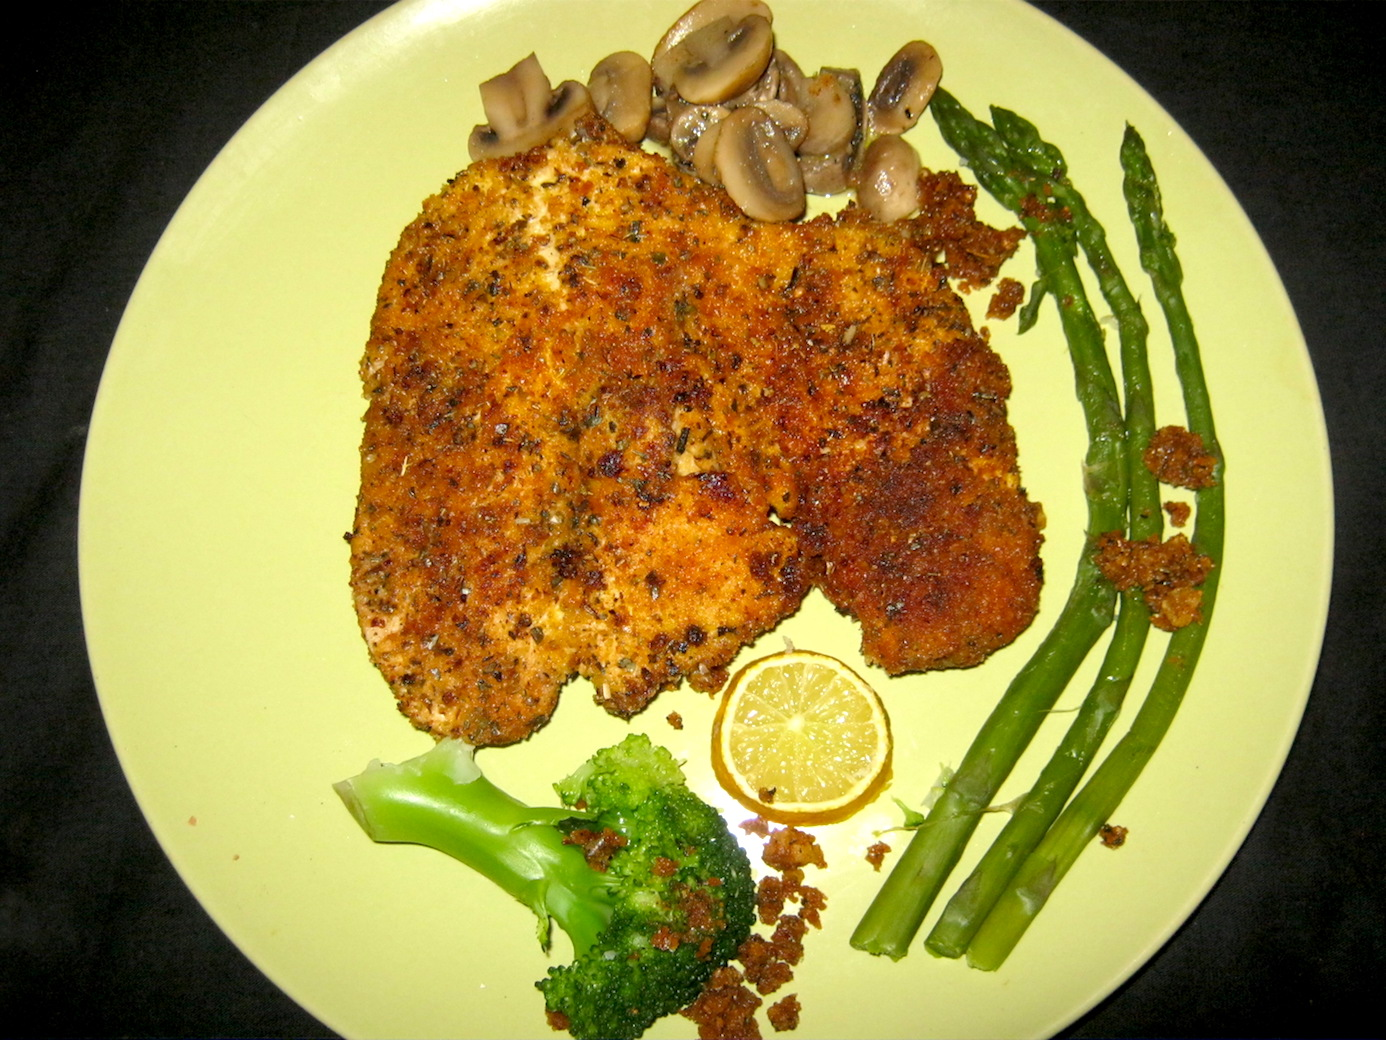 Chicken Schnitzel with Green Asparagus Veggie Combo on green plate